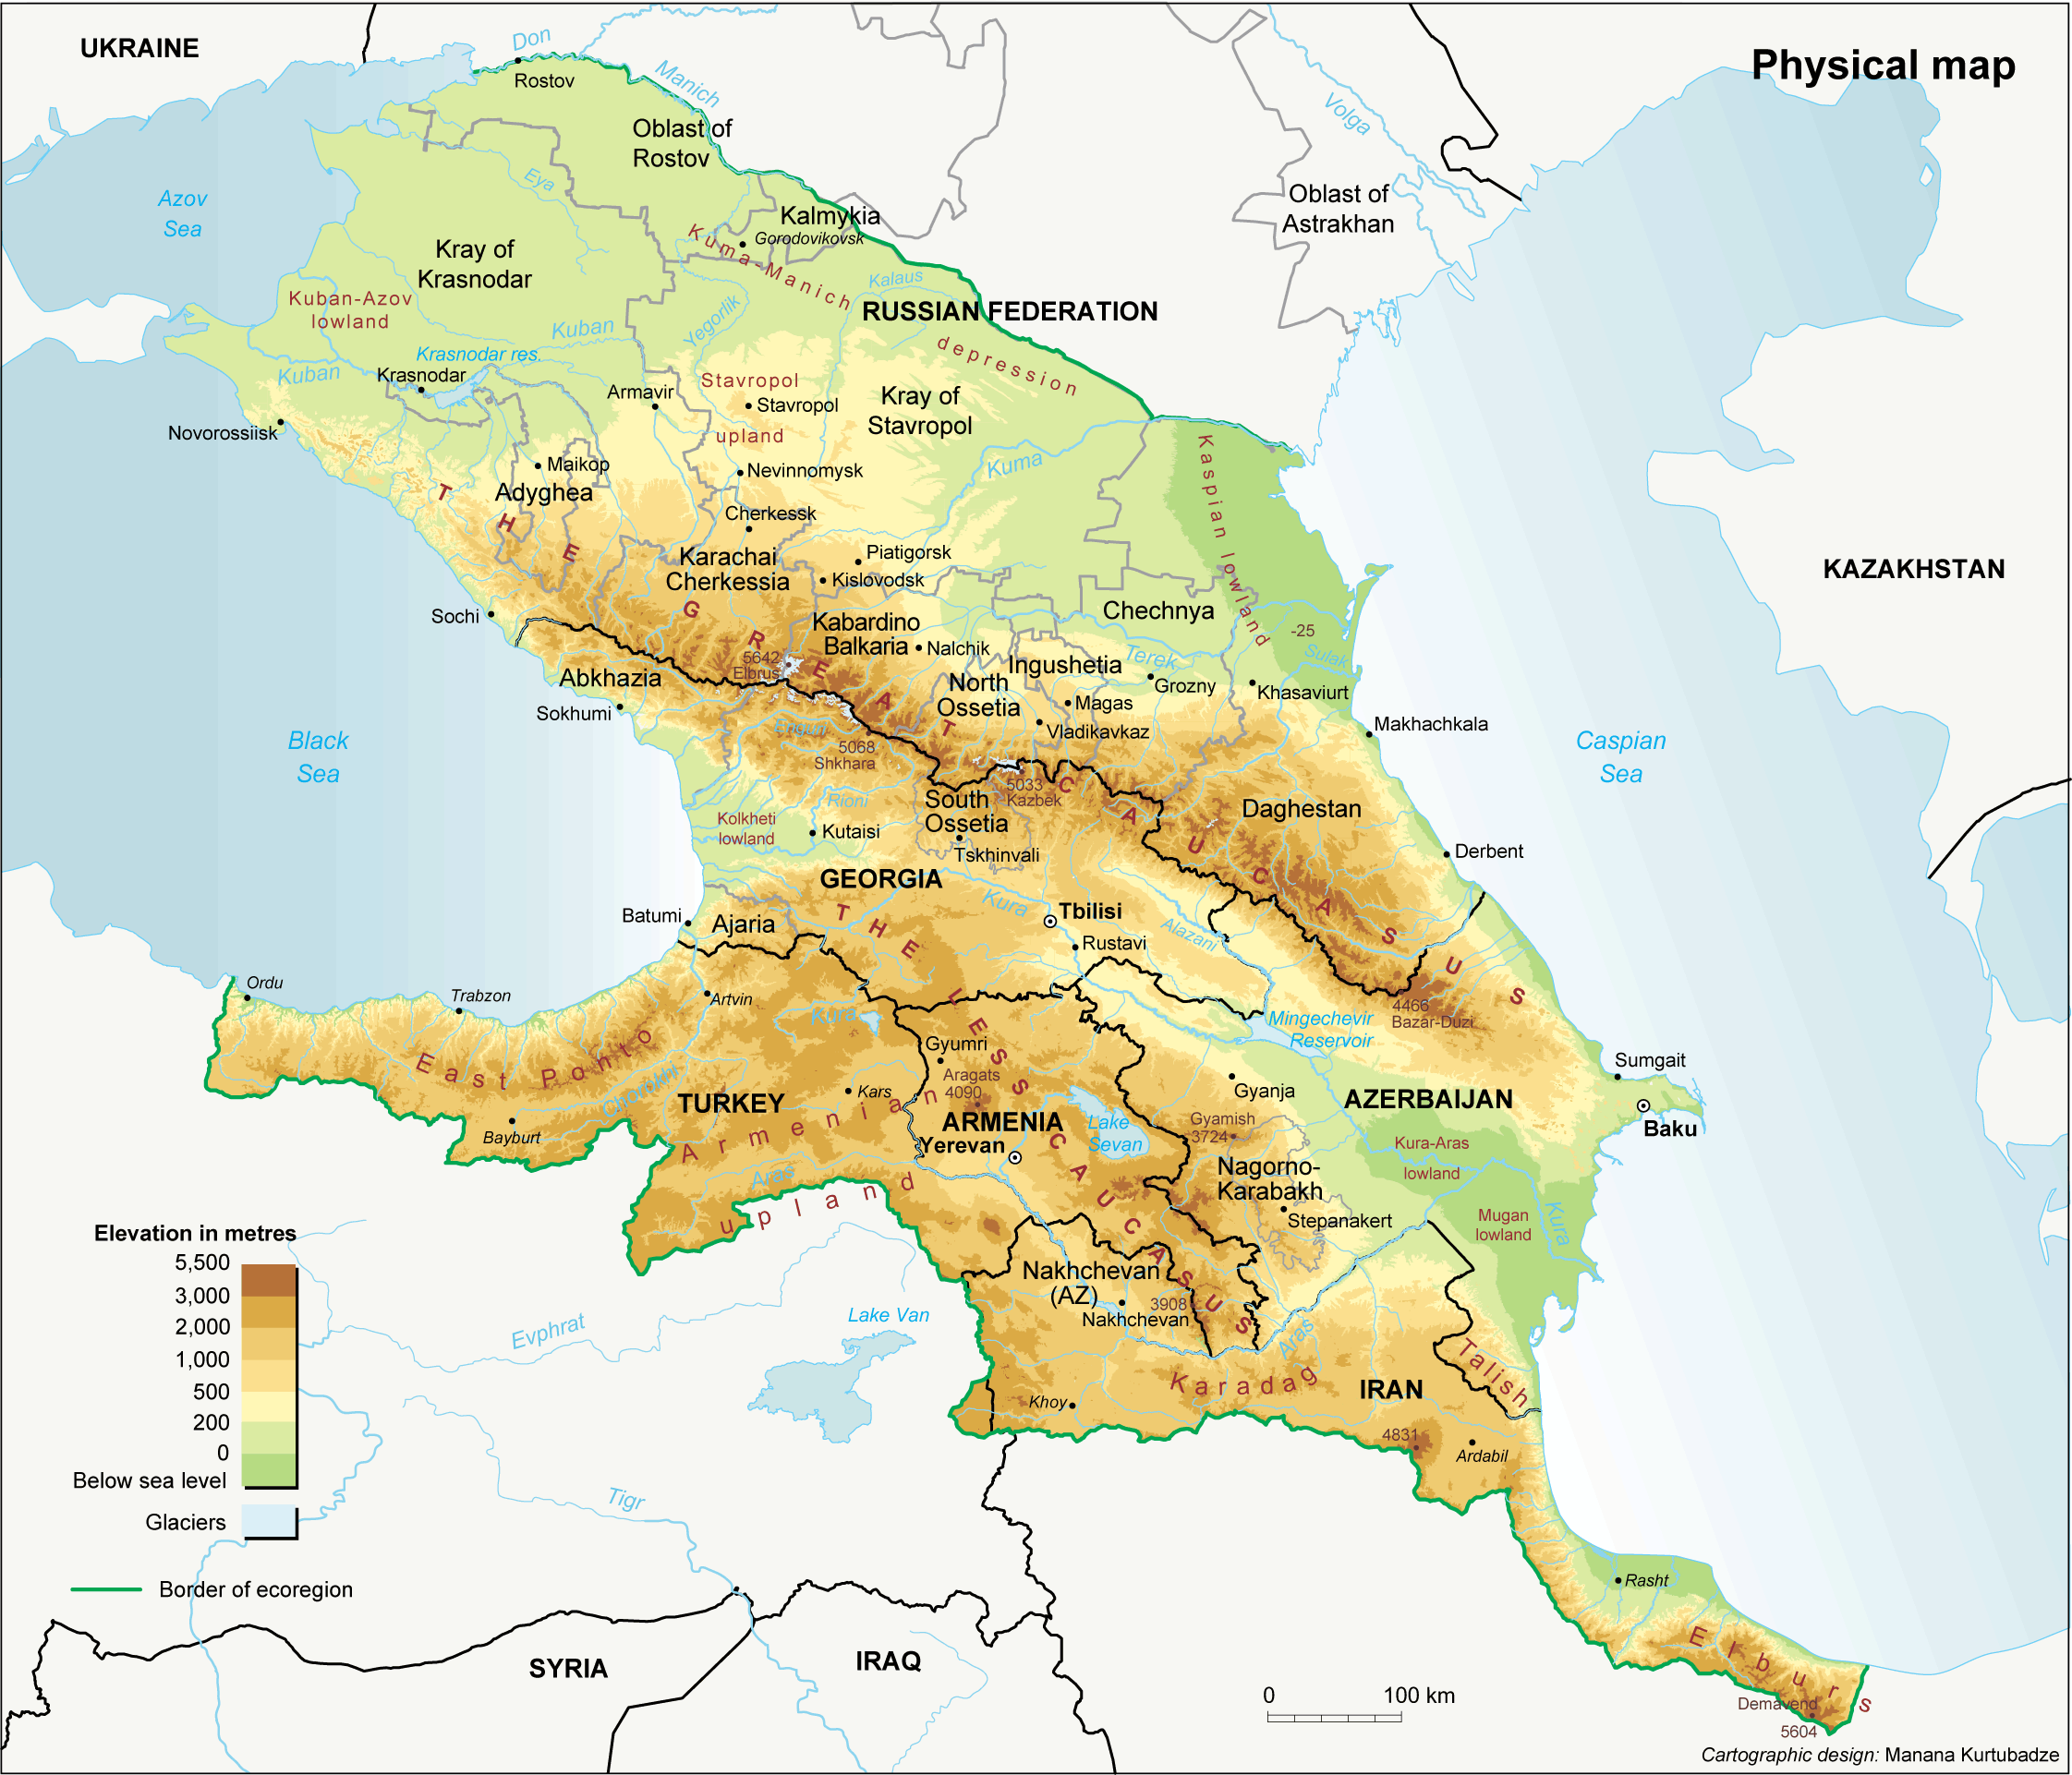 South Caucasus Maps Eurasian Geopolitics - Armenia physical map